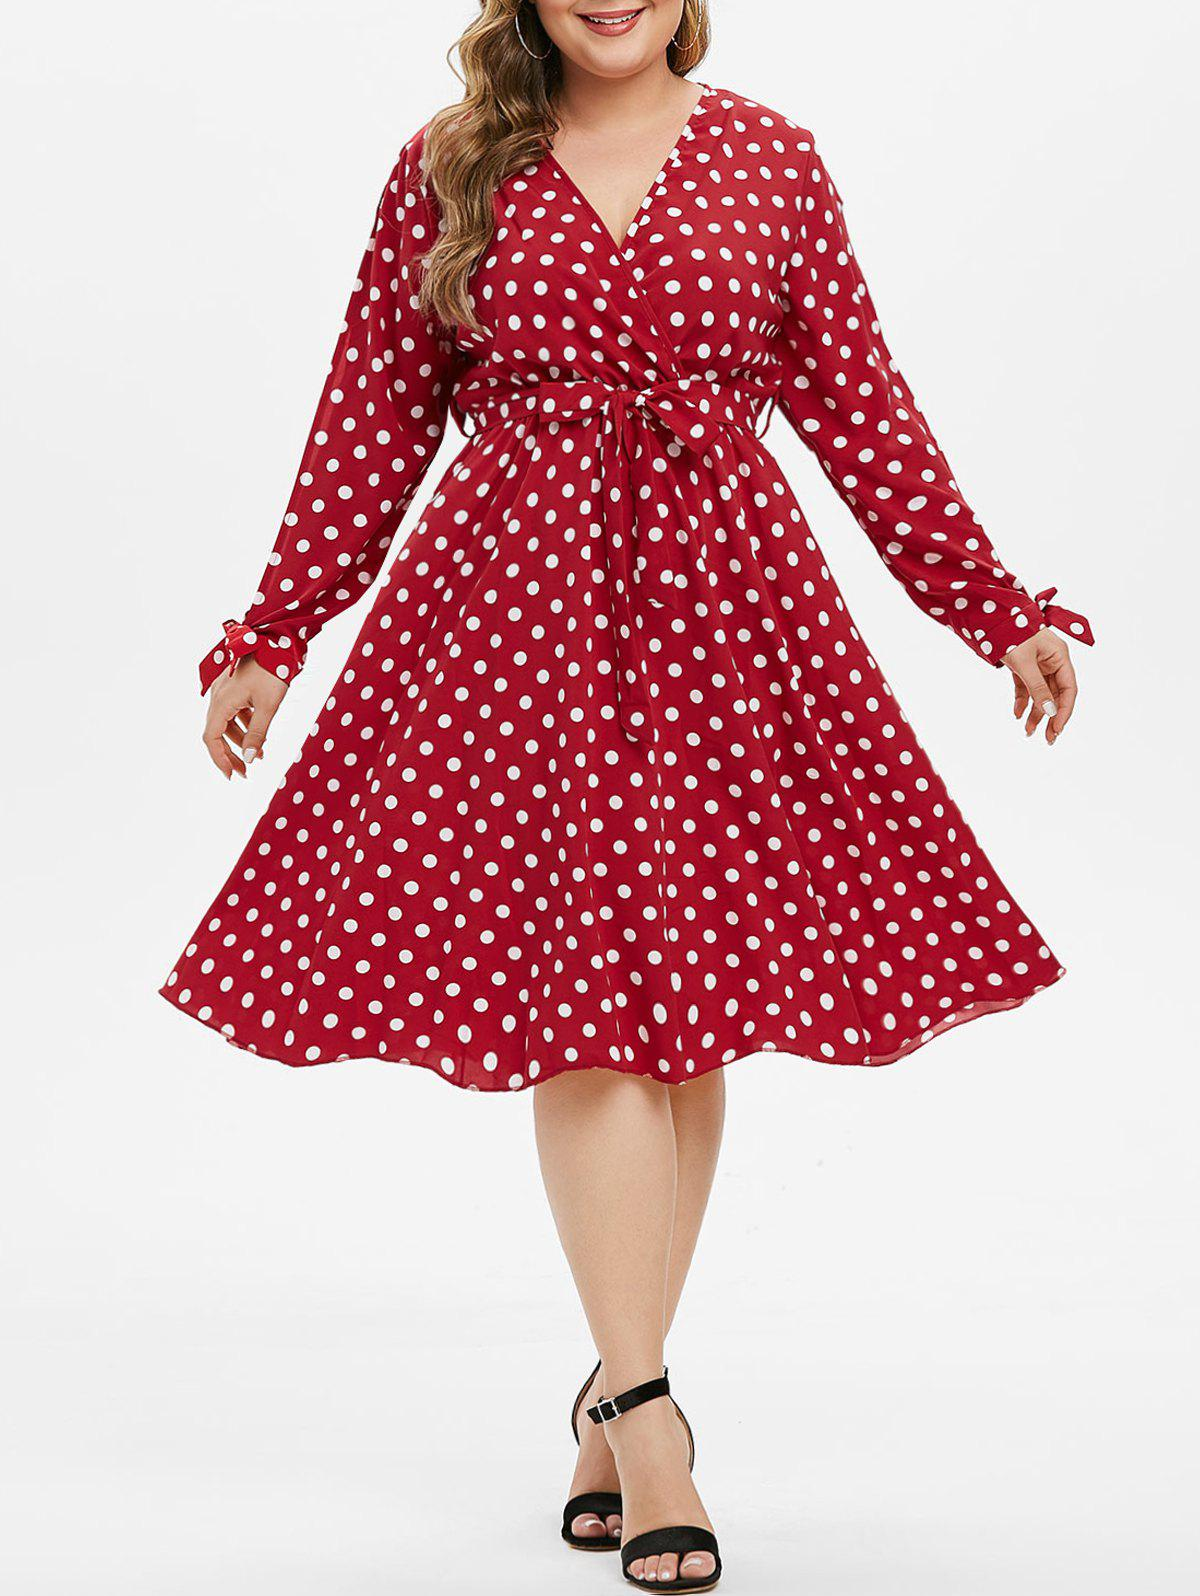 New Knotted Belted Polka Dot Split Sleeve Plus Size Surplice Dress